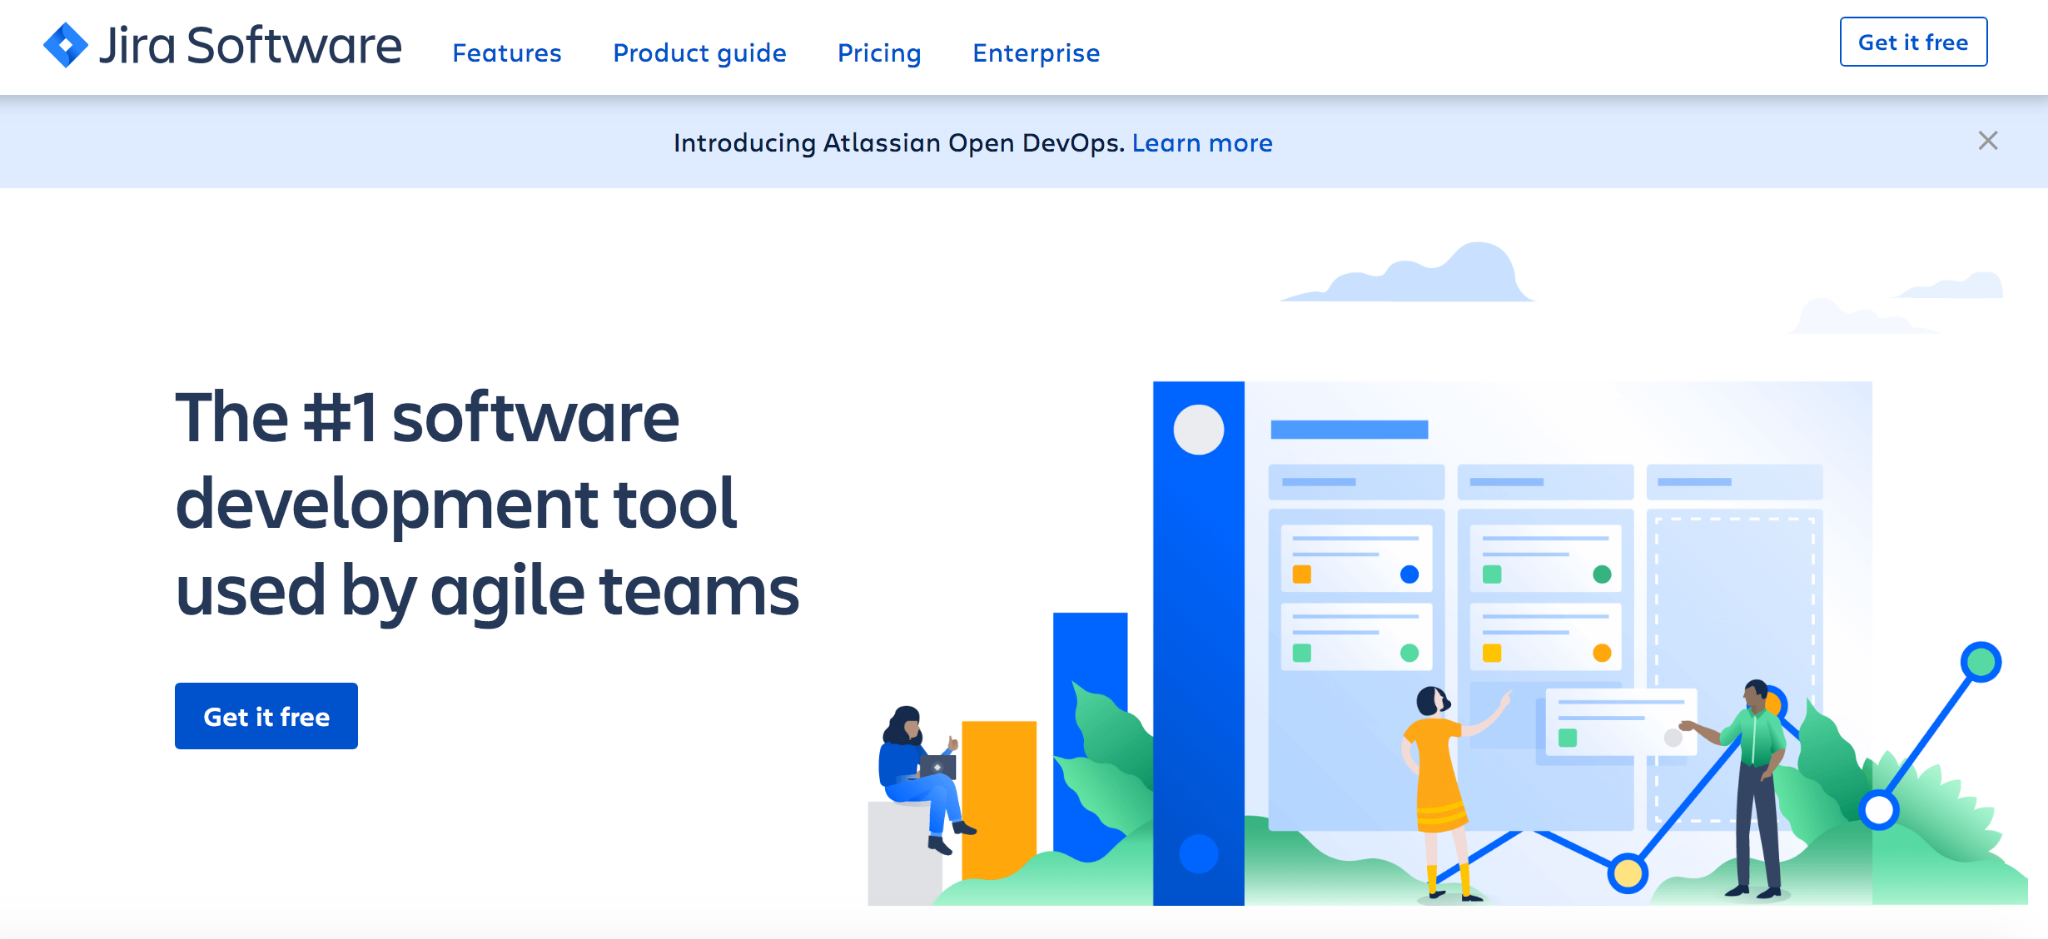 Jira Software homepage: The #1 software development tool used by agile teams.